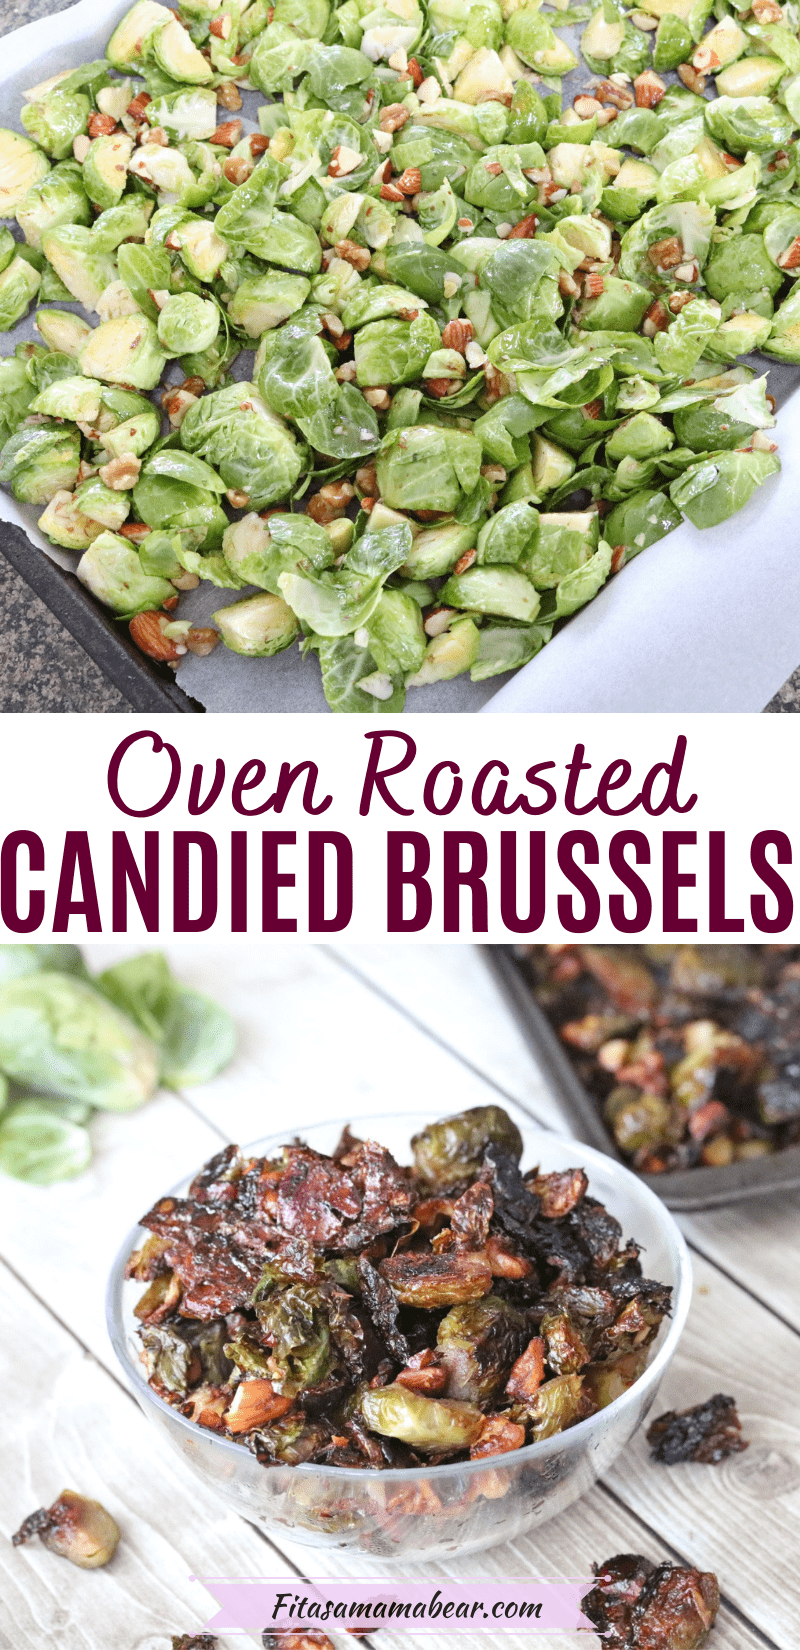 Pinterest image with text: two images of candied brussels sprouts the top image of brussels sprouts on a baking pan with walnuts before cooking and the second a glass bowl of roasted brussel sprouts